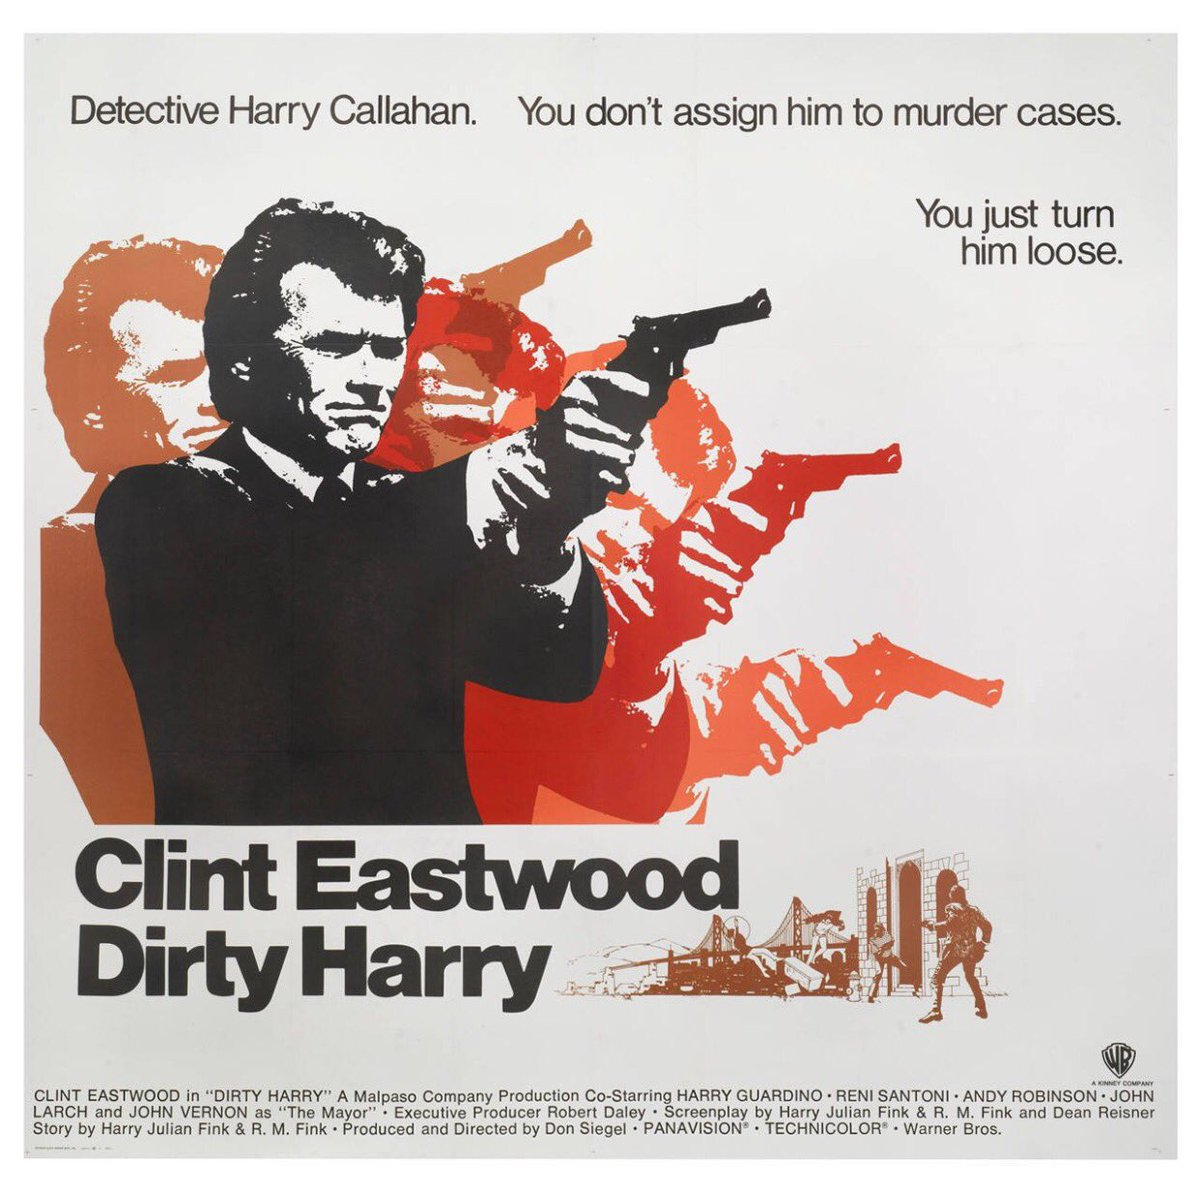 Watching Dirty Harry 1971 Cop Thriller classic #Clint Eastwood pic.twitter.com/6OQOfjZteH